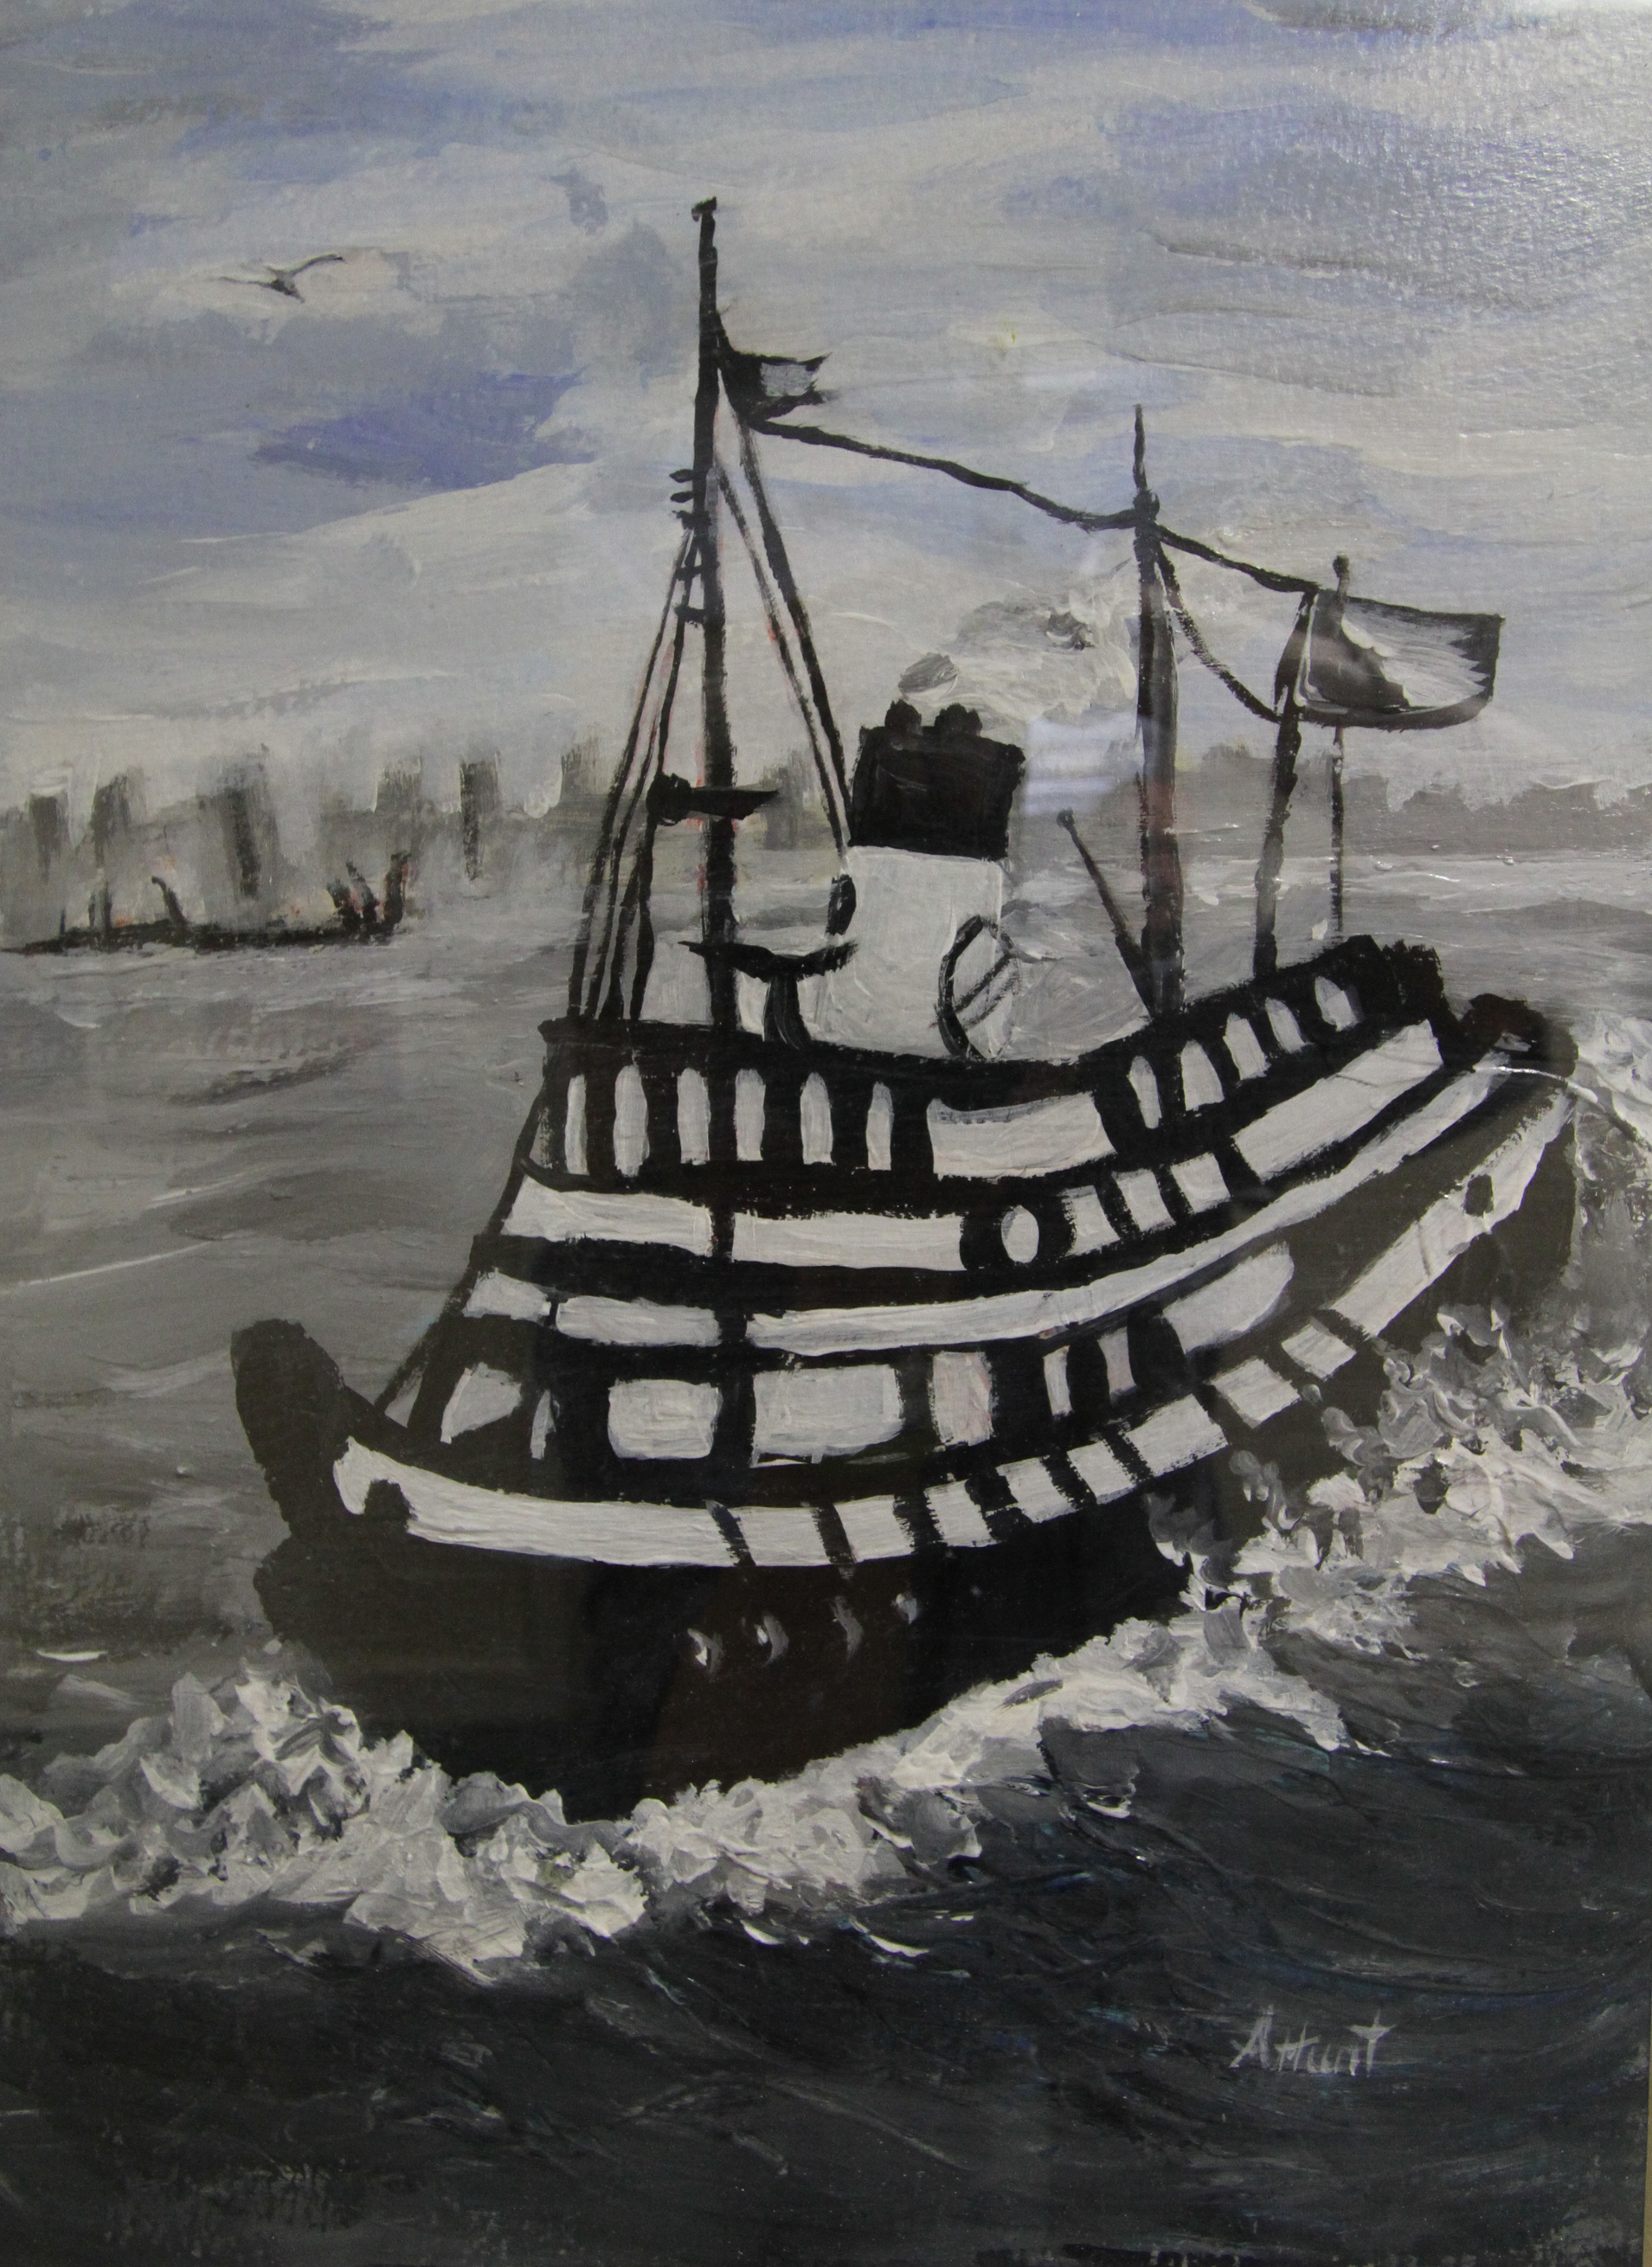 The Old Tug Boat